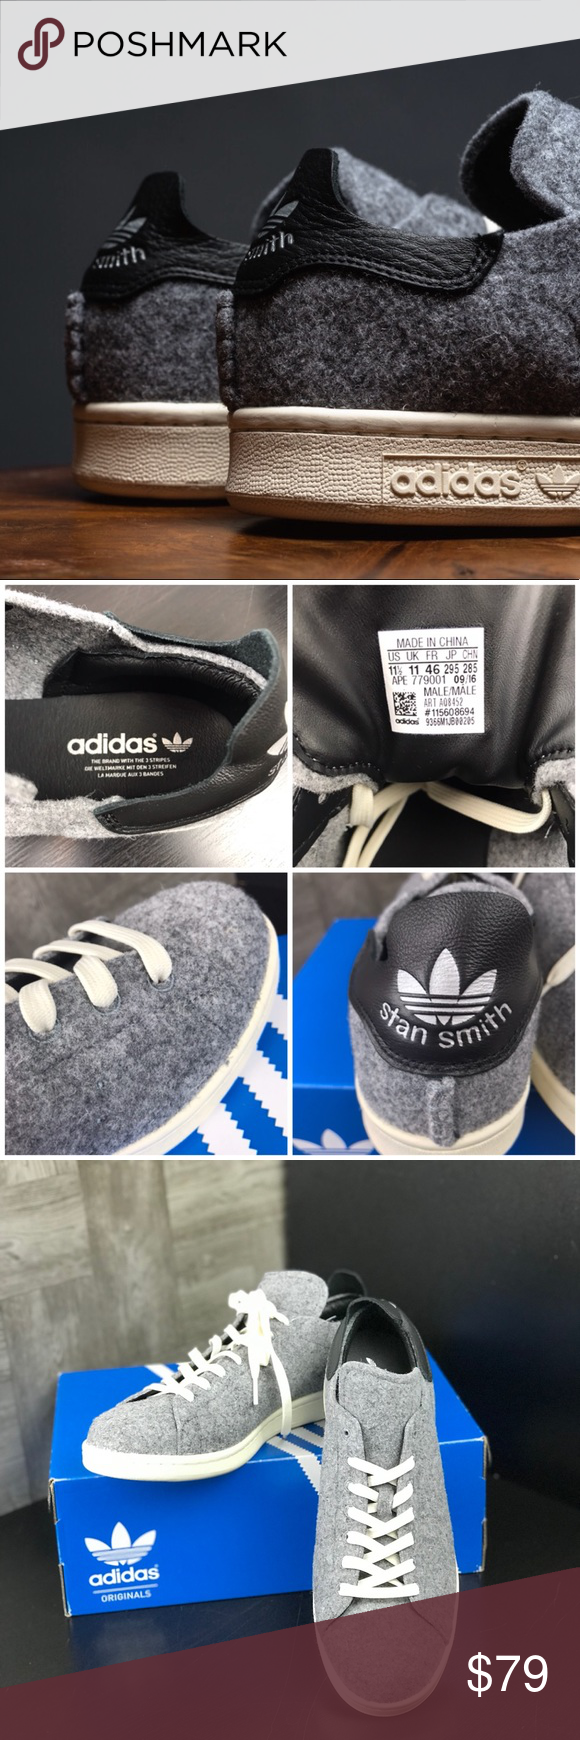 23a8583431 NWT Adidas Stan Smith PC Grey M Brand new with box. Price is firm!